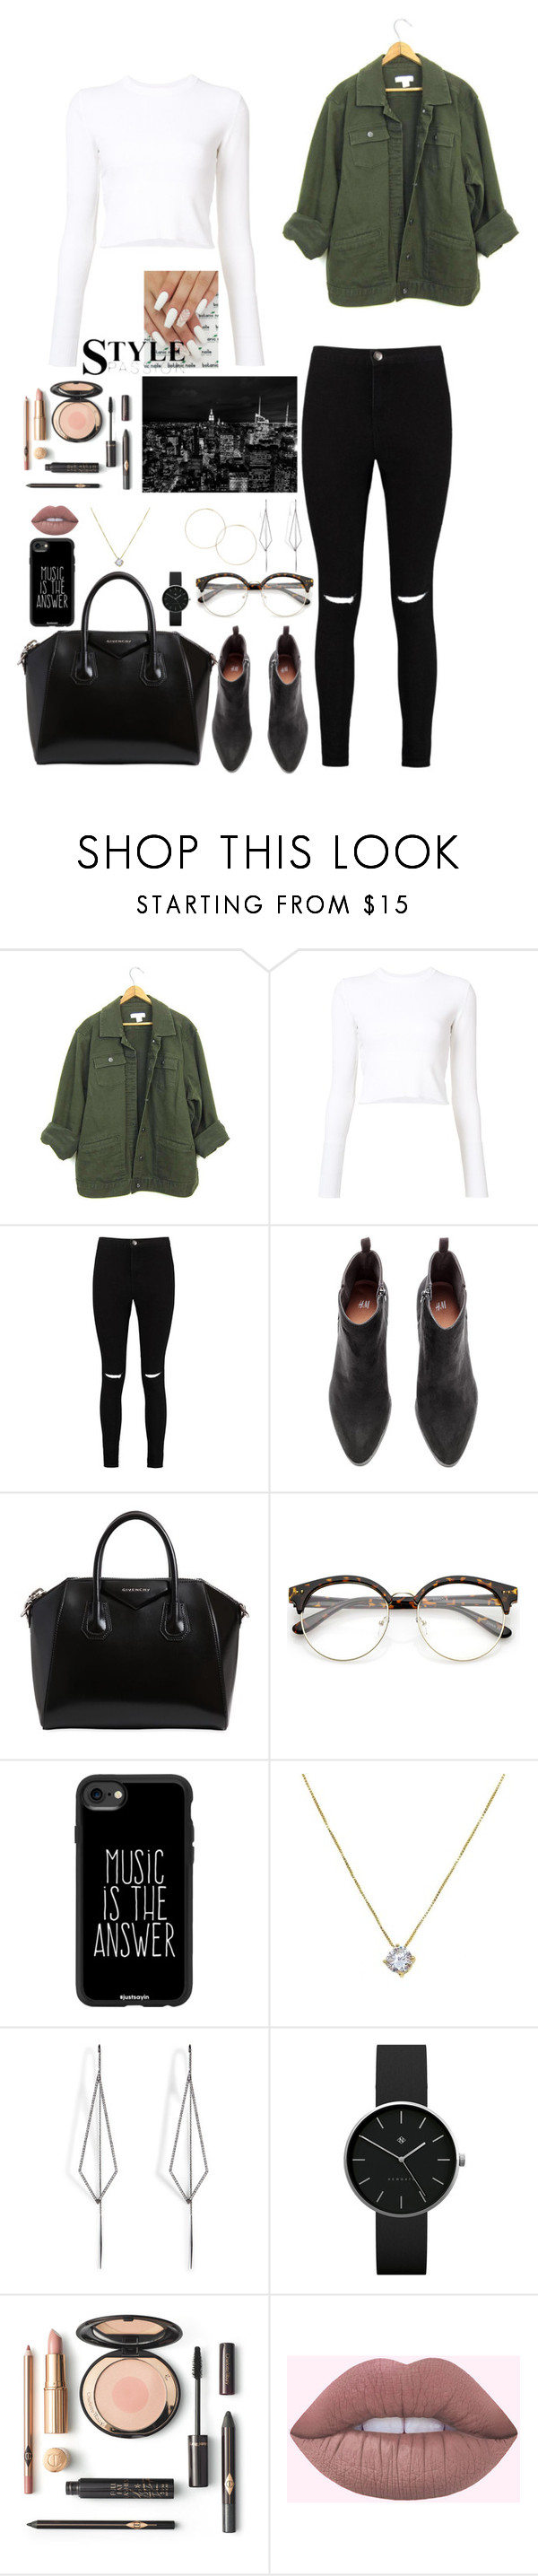 """""""Untitled #259"""" by gorlmoria on Polyvore featuring Proenza Schouler, Boohoo, Givenchy, Casetify, Diane Kordas and Newgate"""